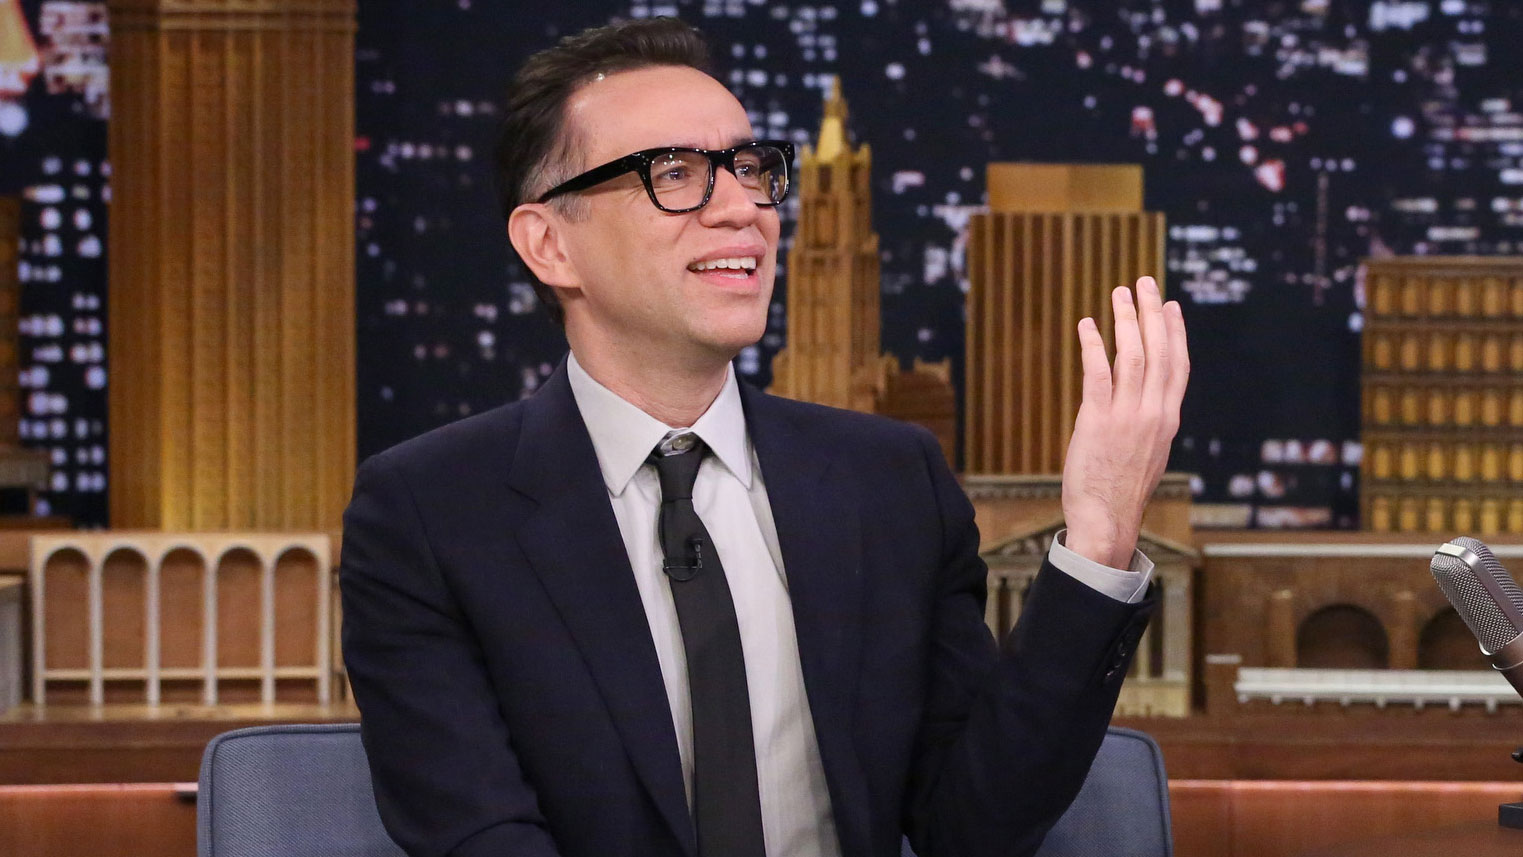 Fred Armisen Can Do Any Southern Accent  The Tonight Show